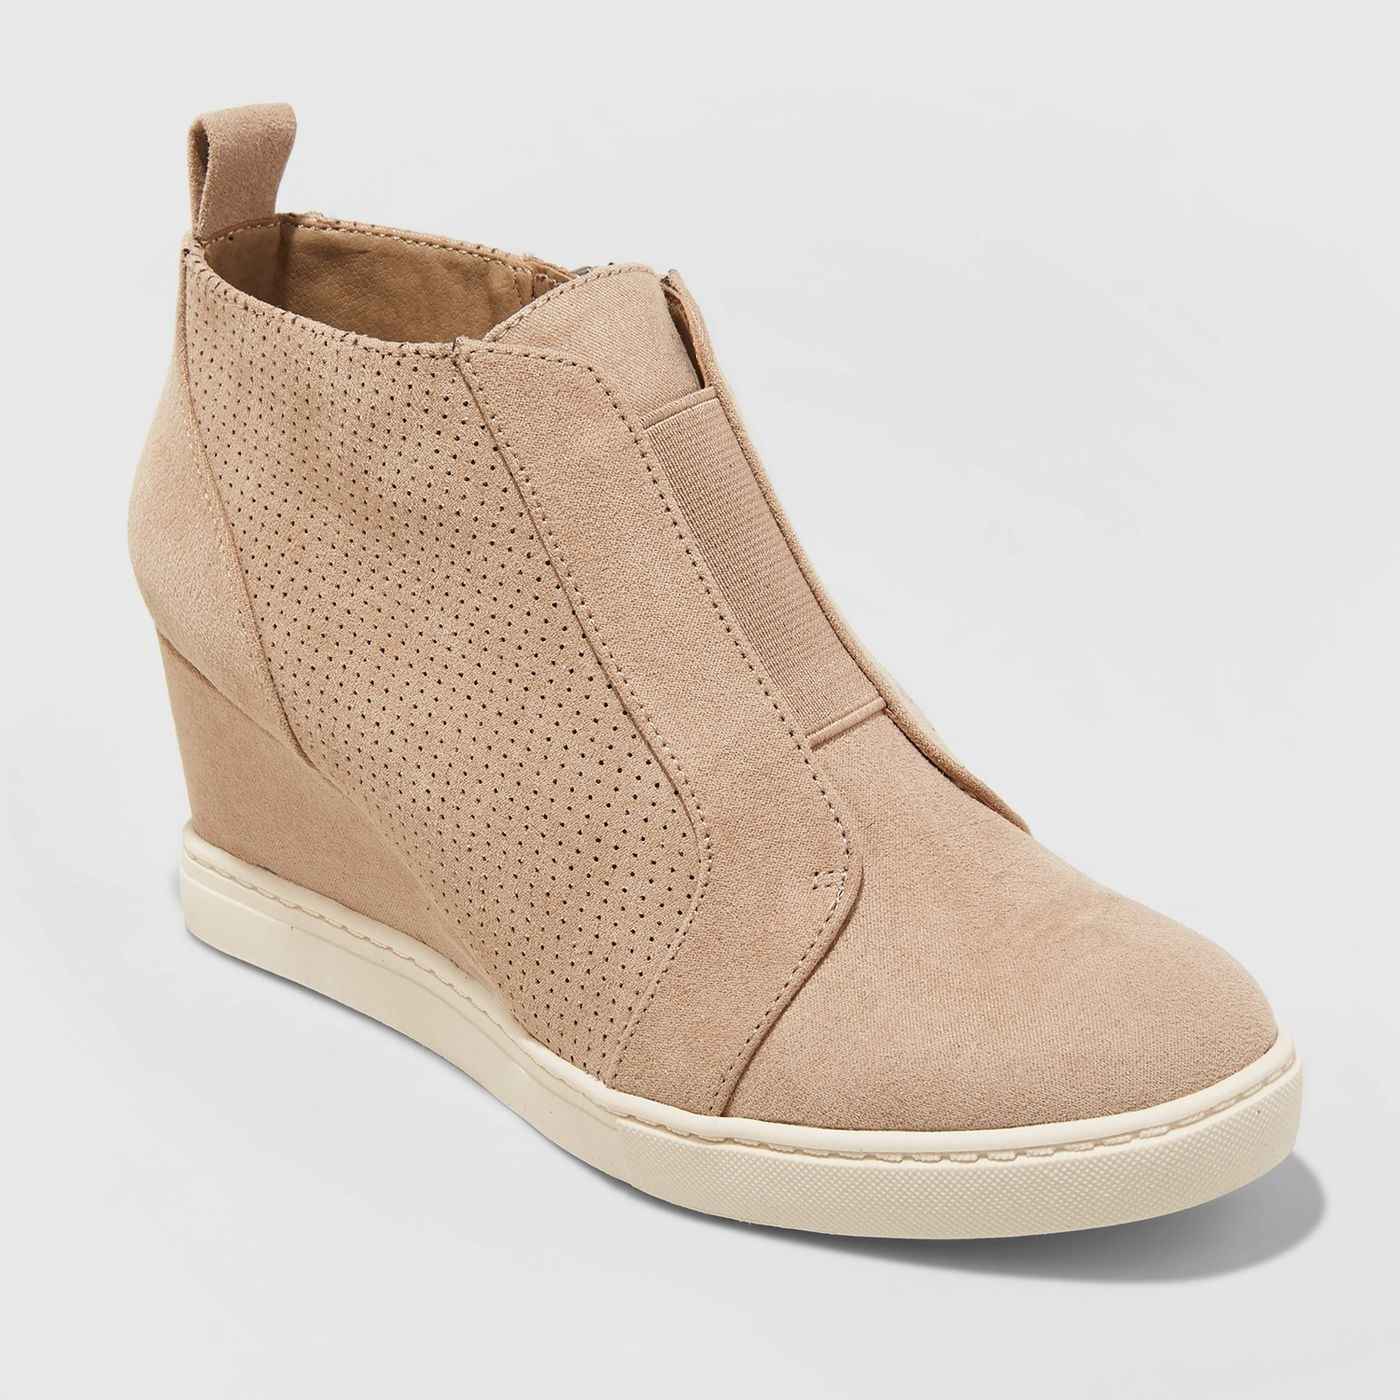 the tan slip on laceless wedges with perforated details